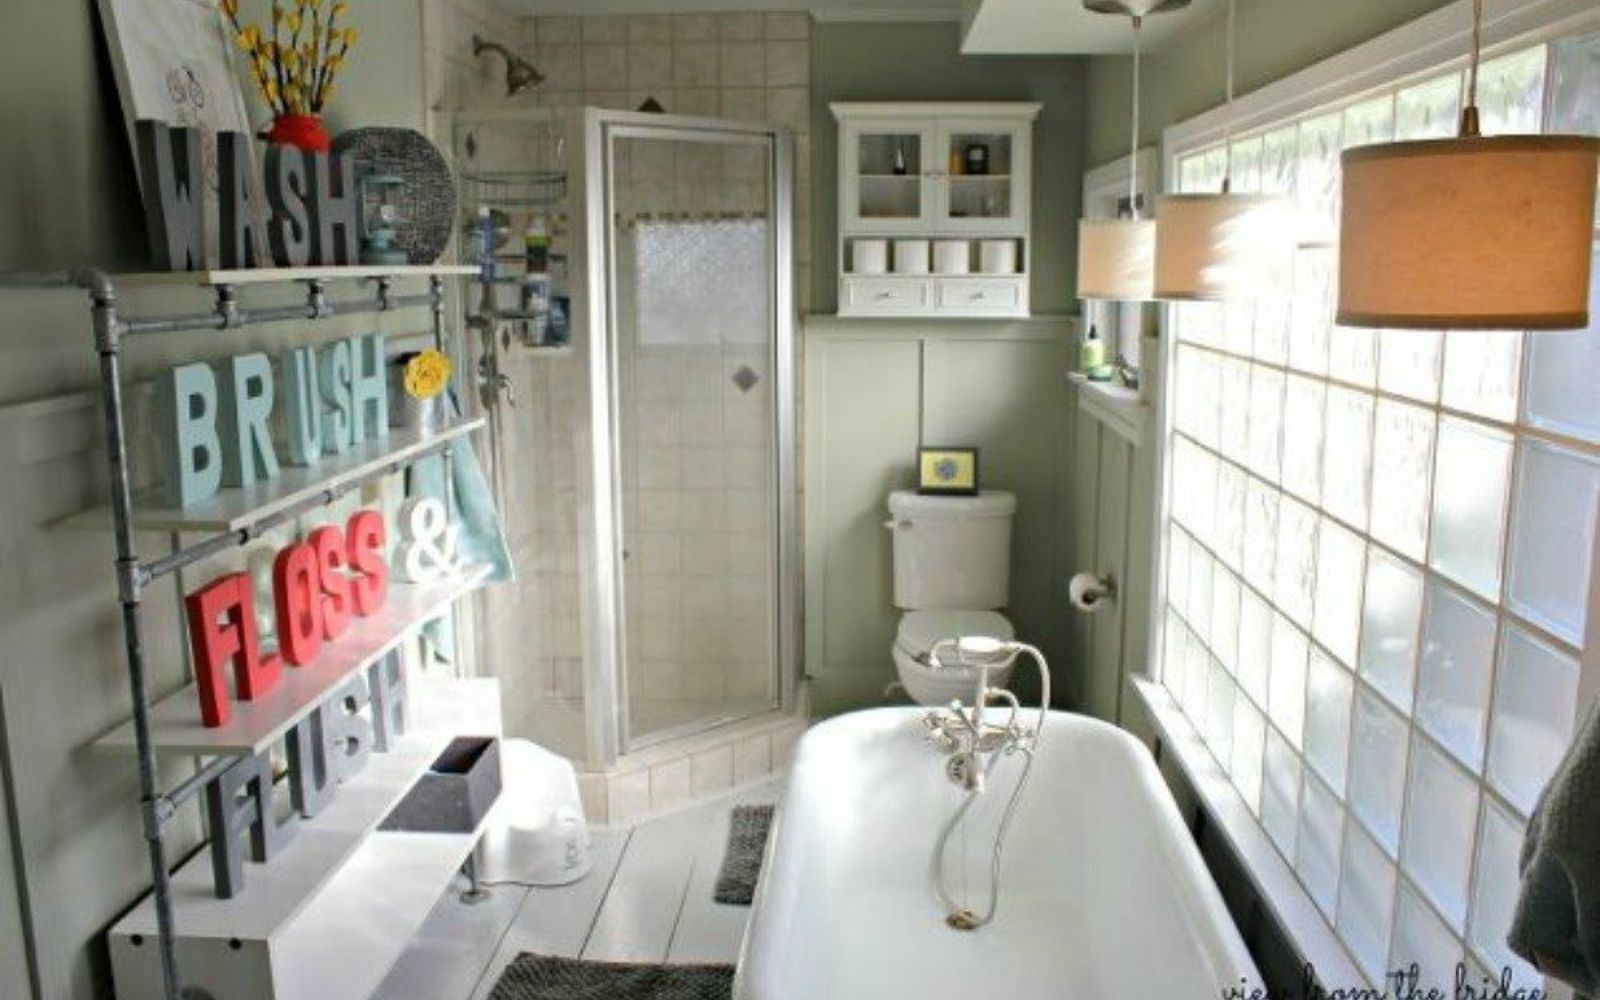 s give your kids the coolest bathroom with these 13 jaw dropping ideas, bathroom ideas, Add block letters to shelving